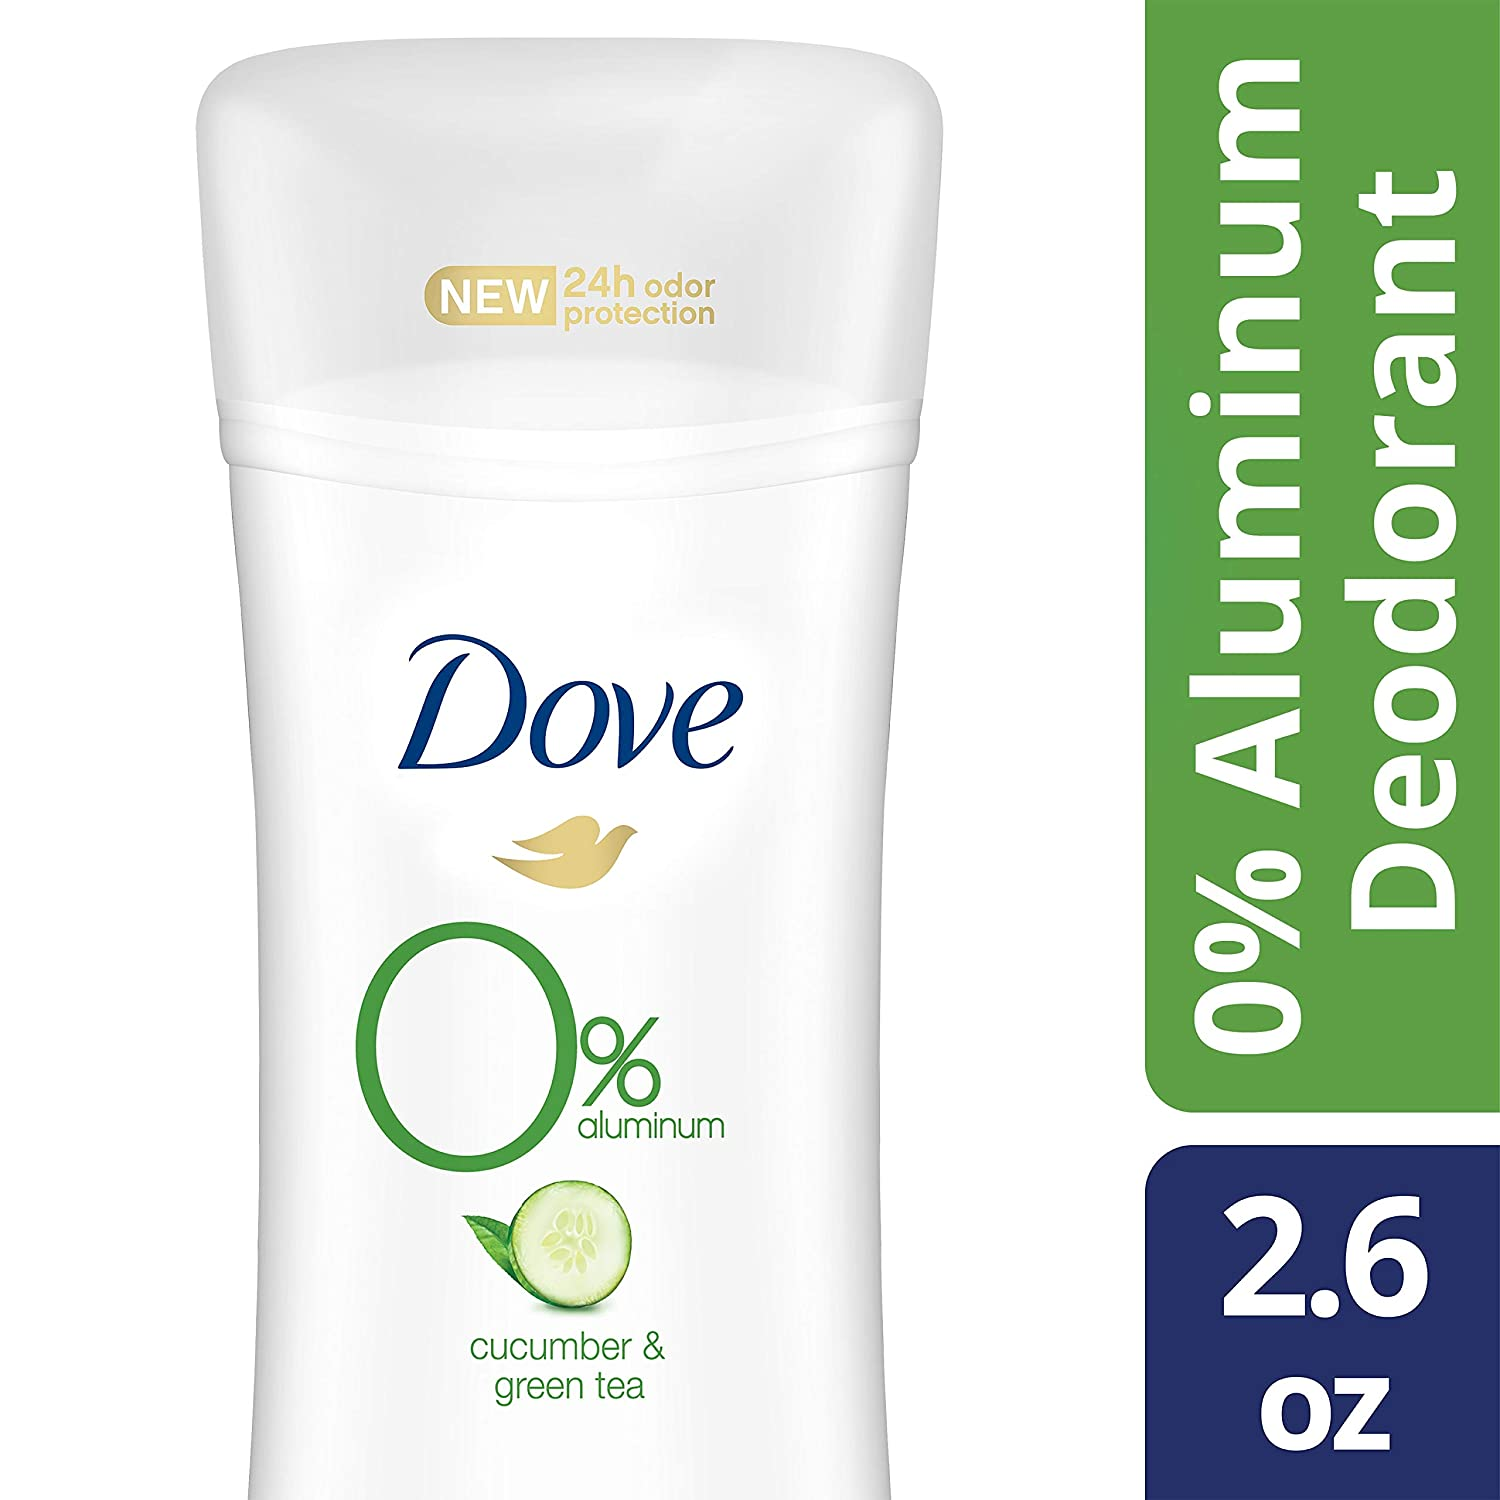 DOVE WOMENS DEO Dove 0% aluminum deodorant cucumber & green tea 2.6oz, pack of 3, 7.8 Ounce